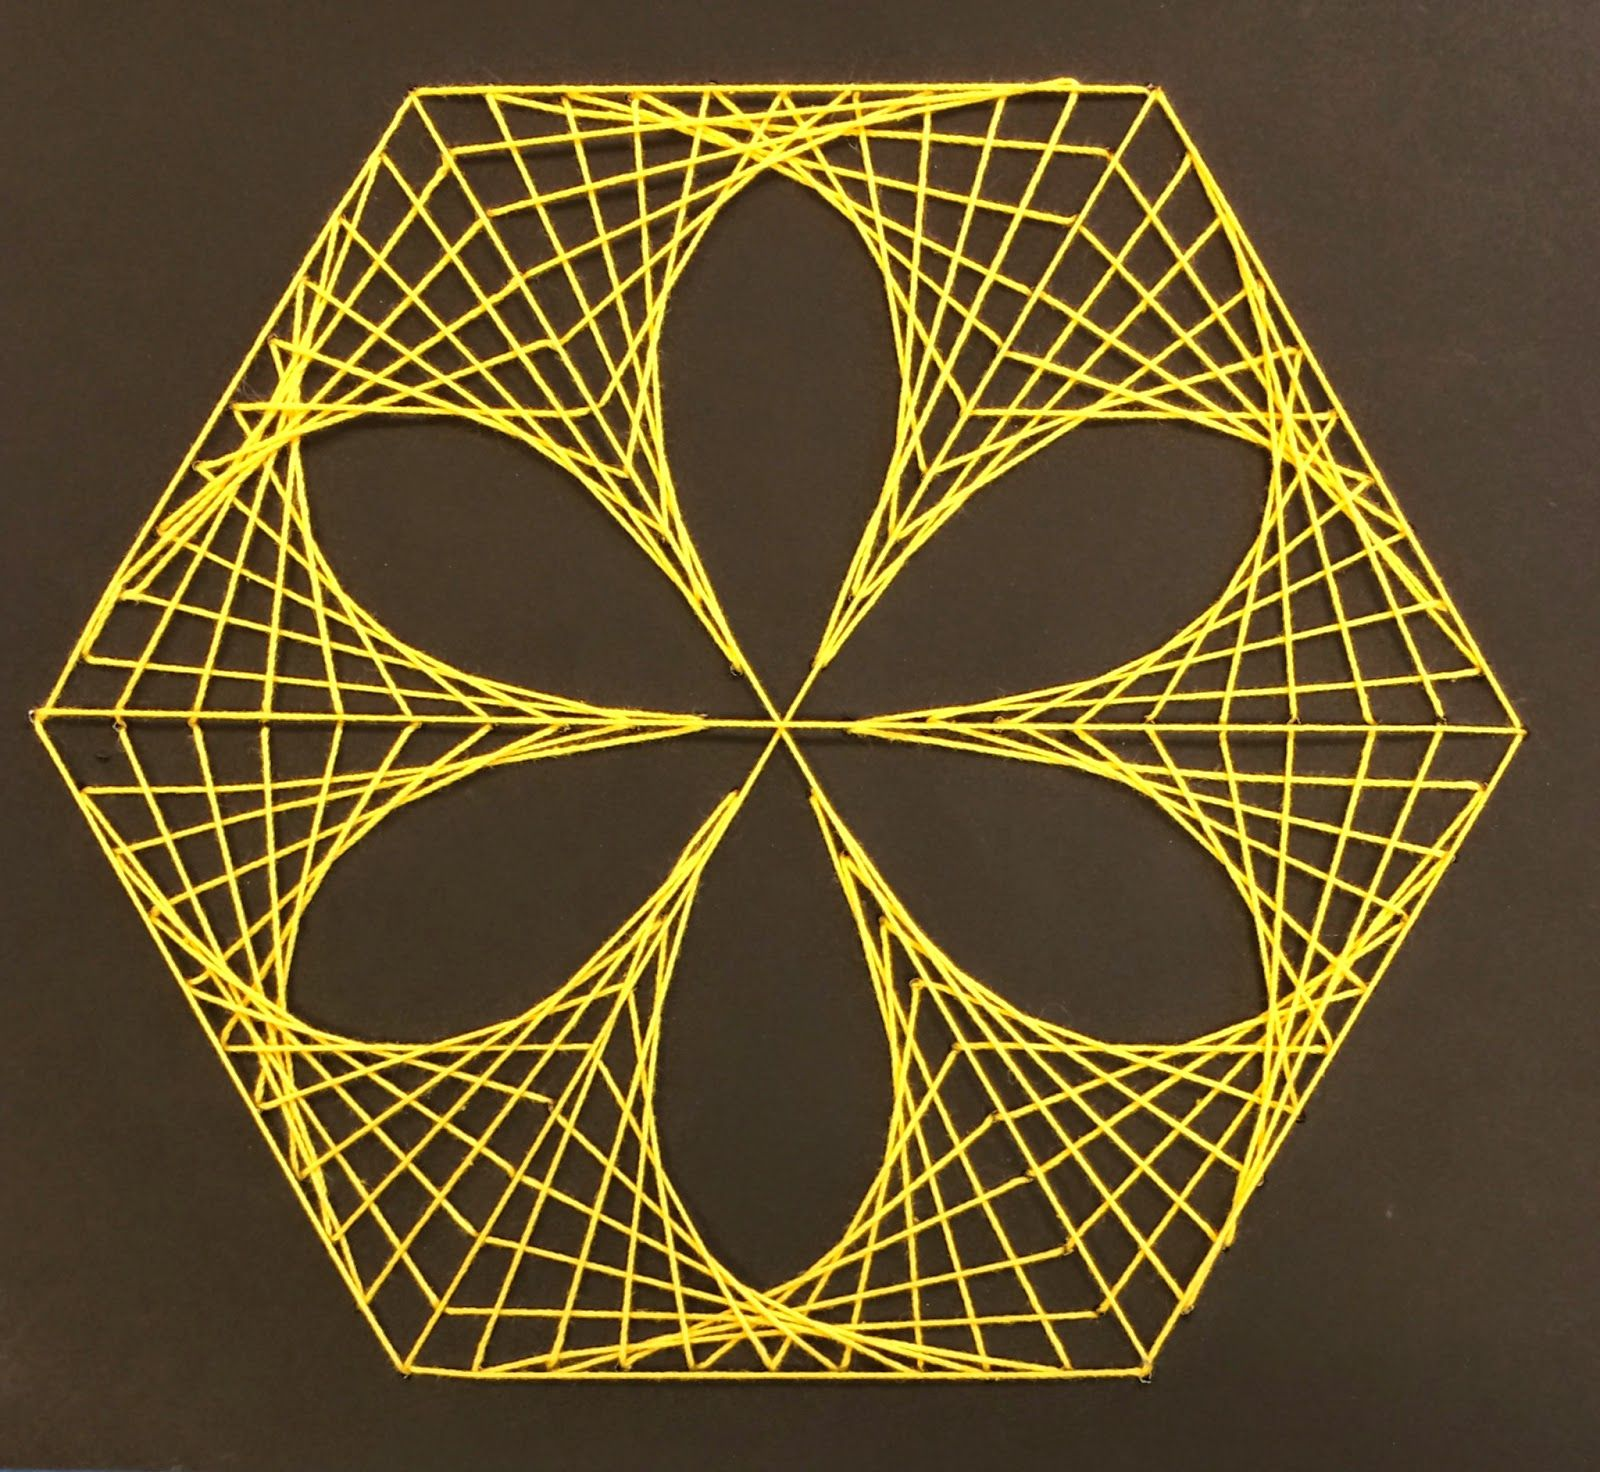 Mathematic String Art | String art, Scissors and Paper embroidery